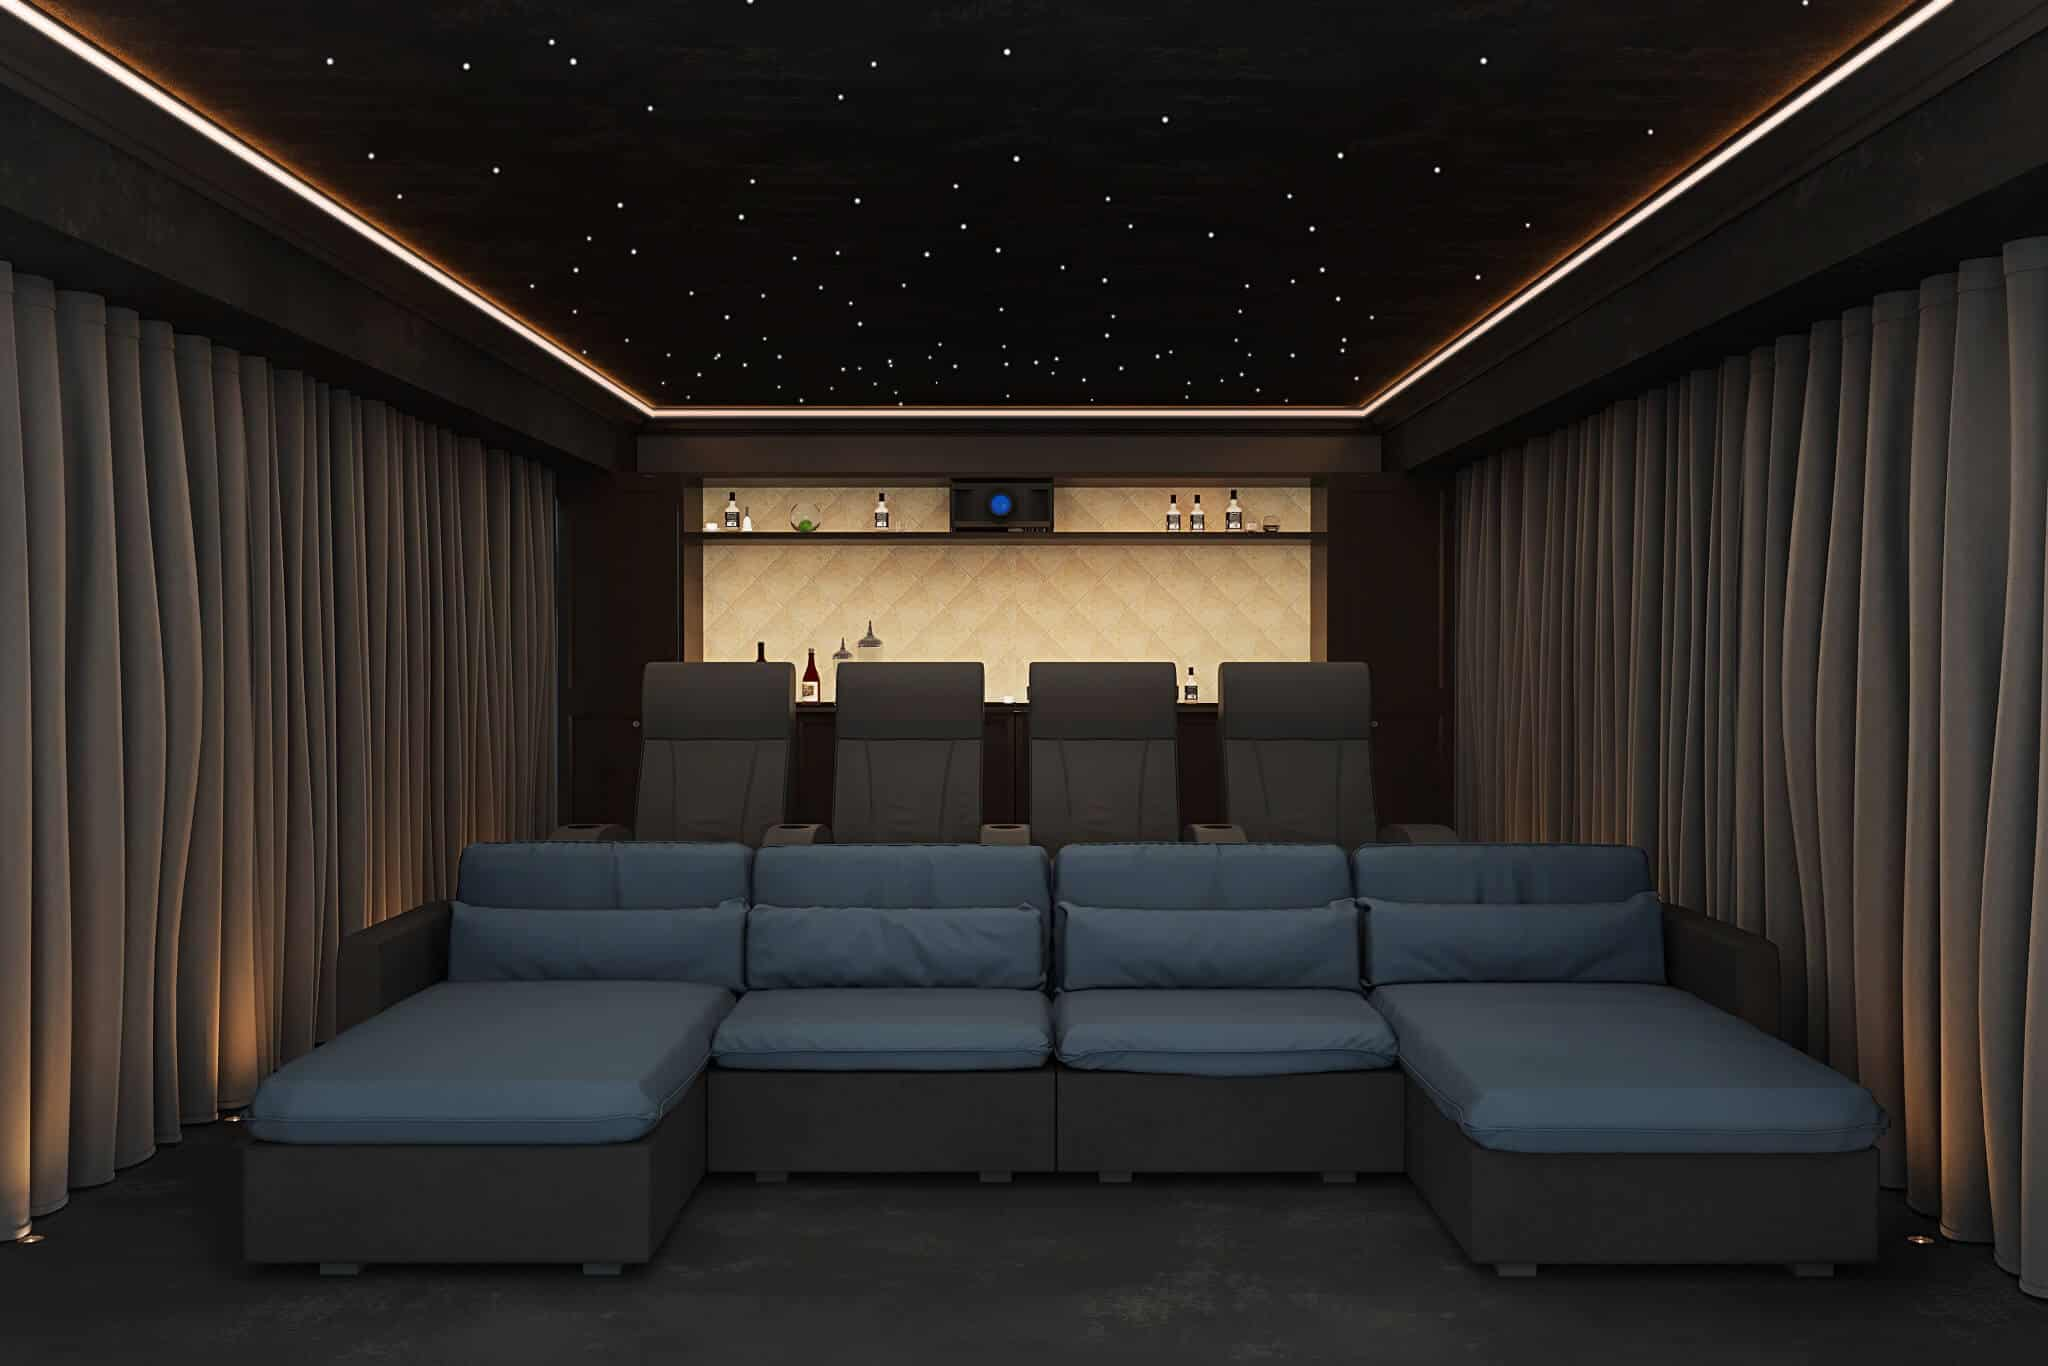 Eclairage Led Cinema A Guide To Home Cinema Lighting Design By Custom Controls